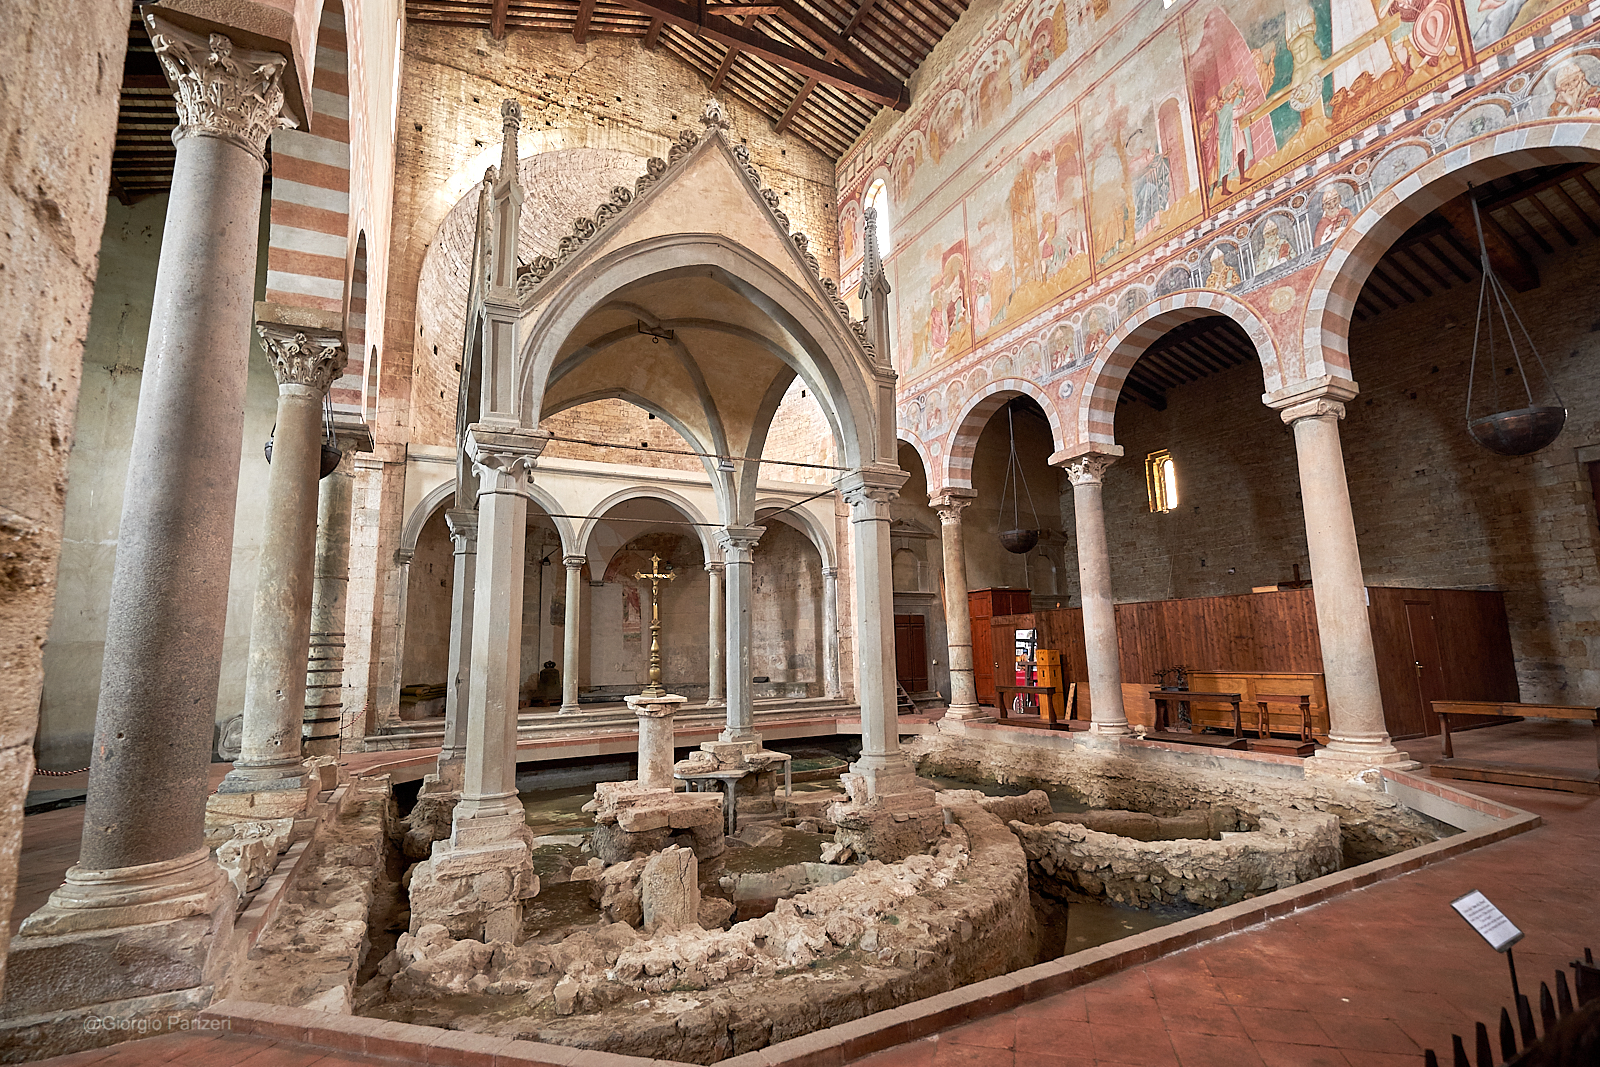 The Romanesque style between Pisa and Lucca